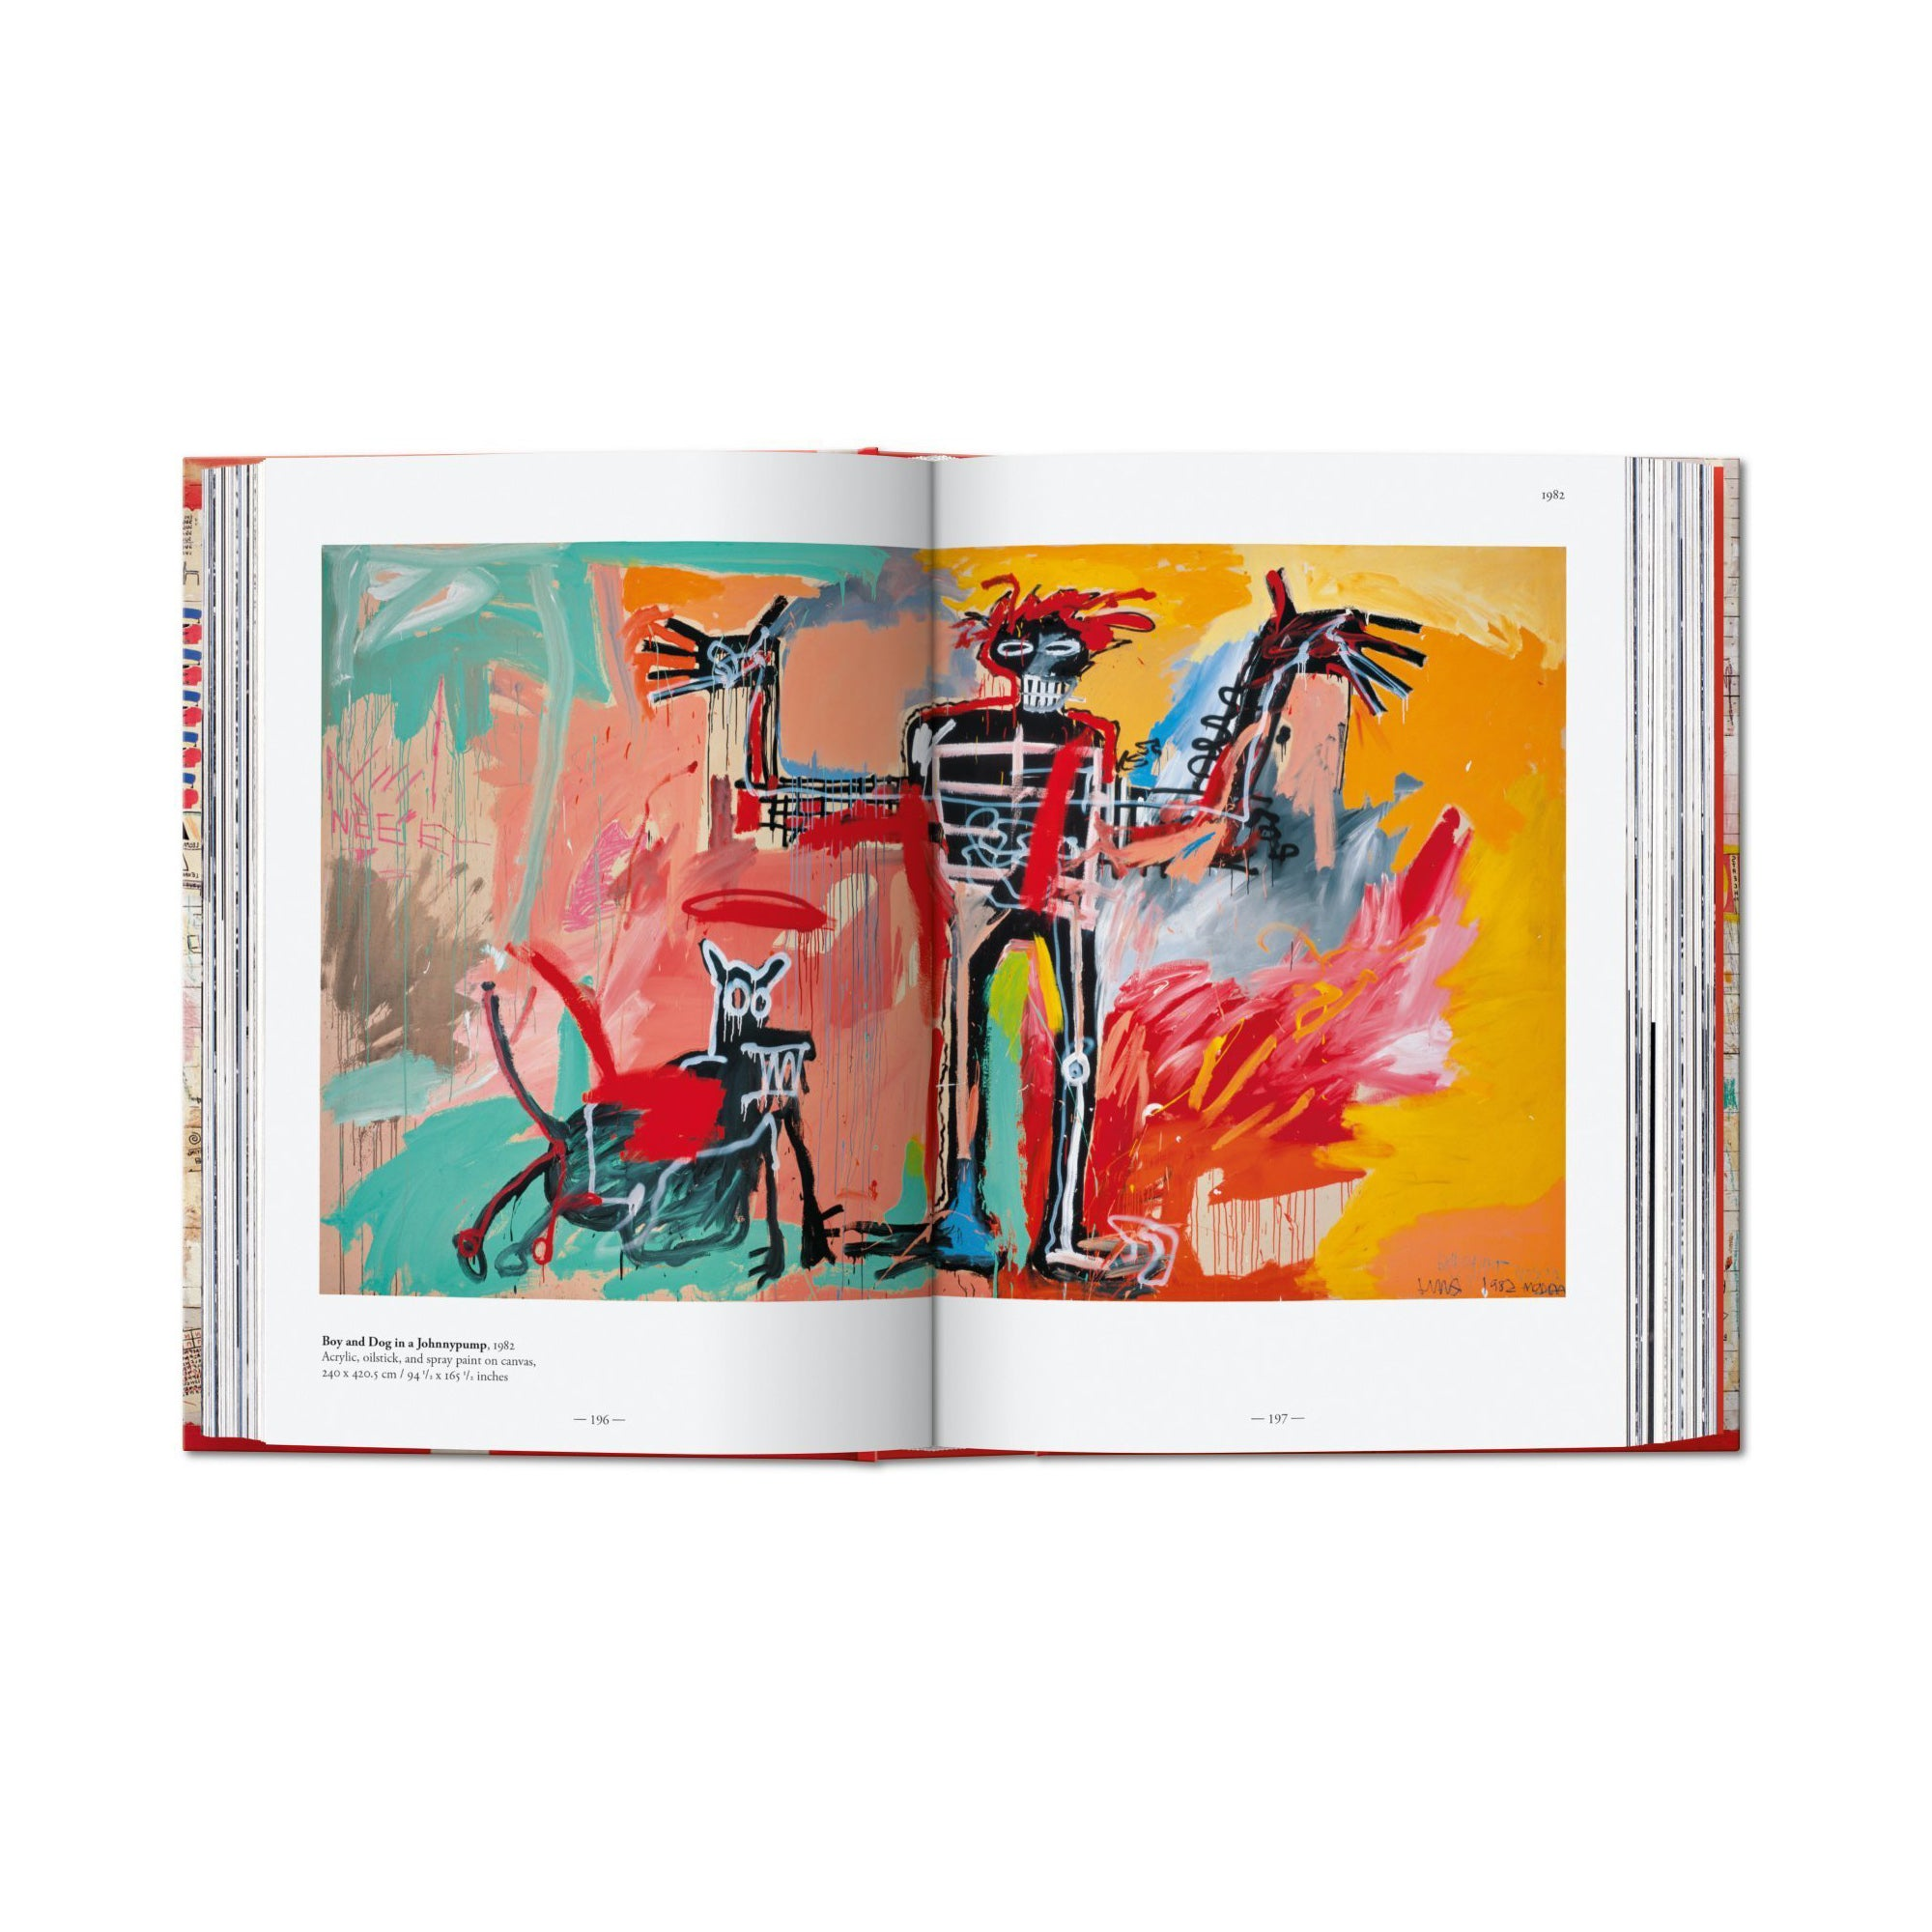 Basquiat. 40th Aniversary Edition